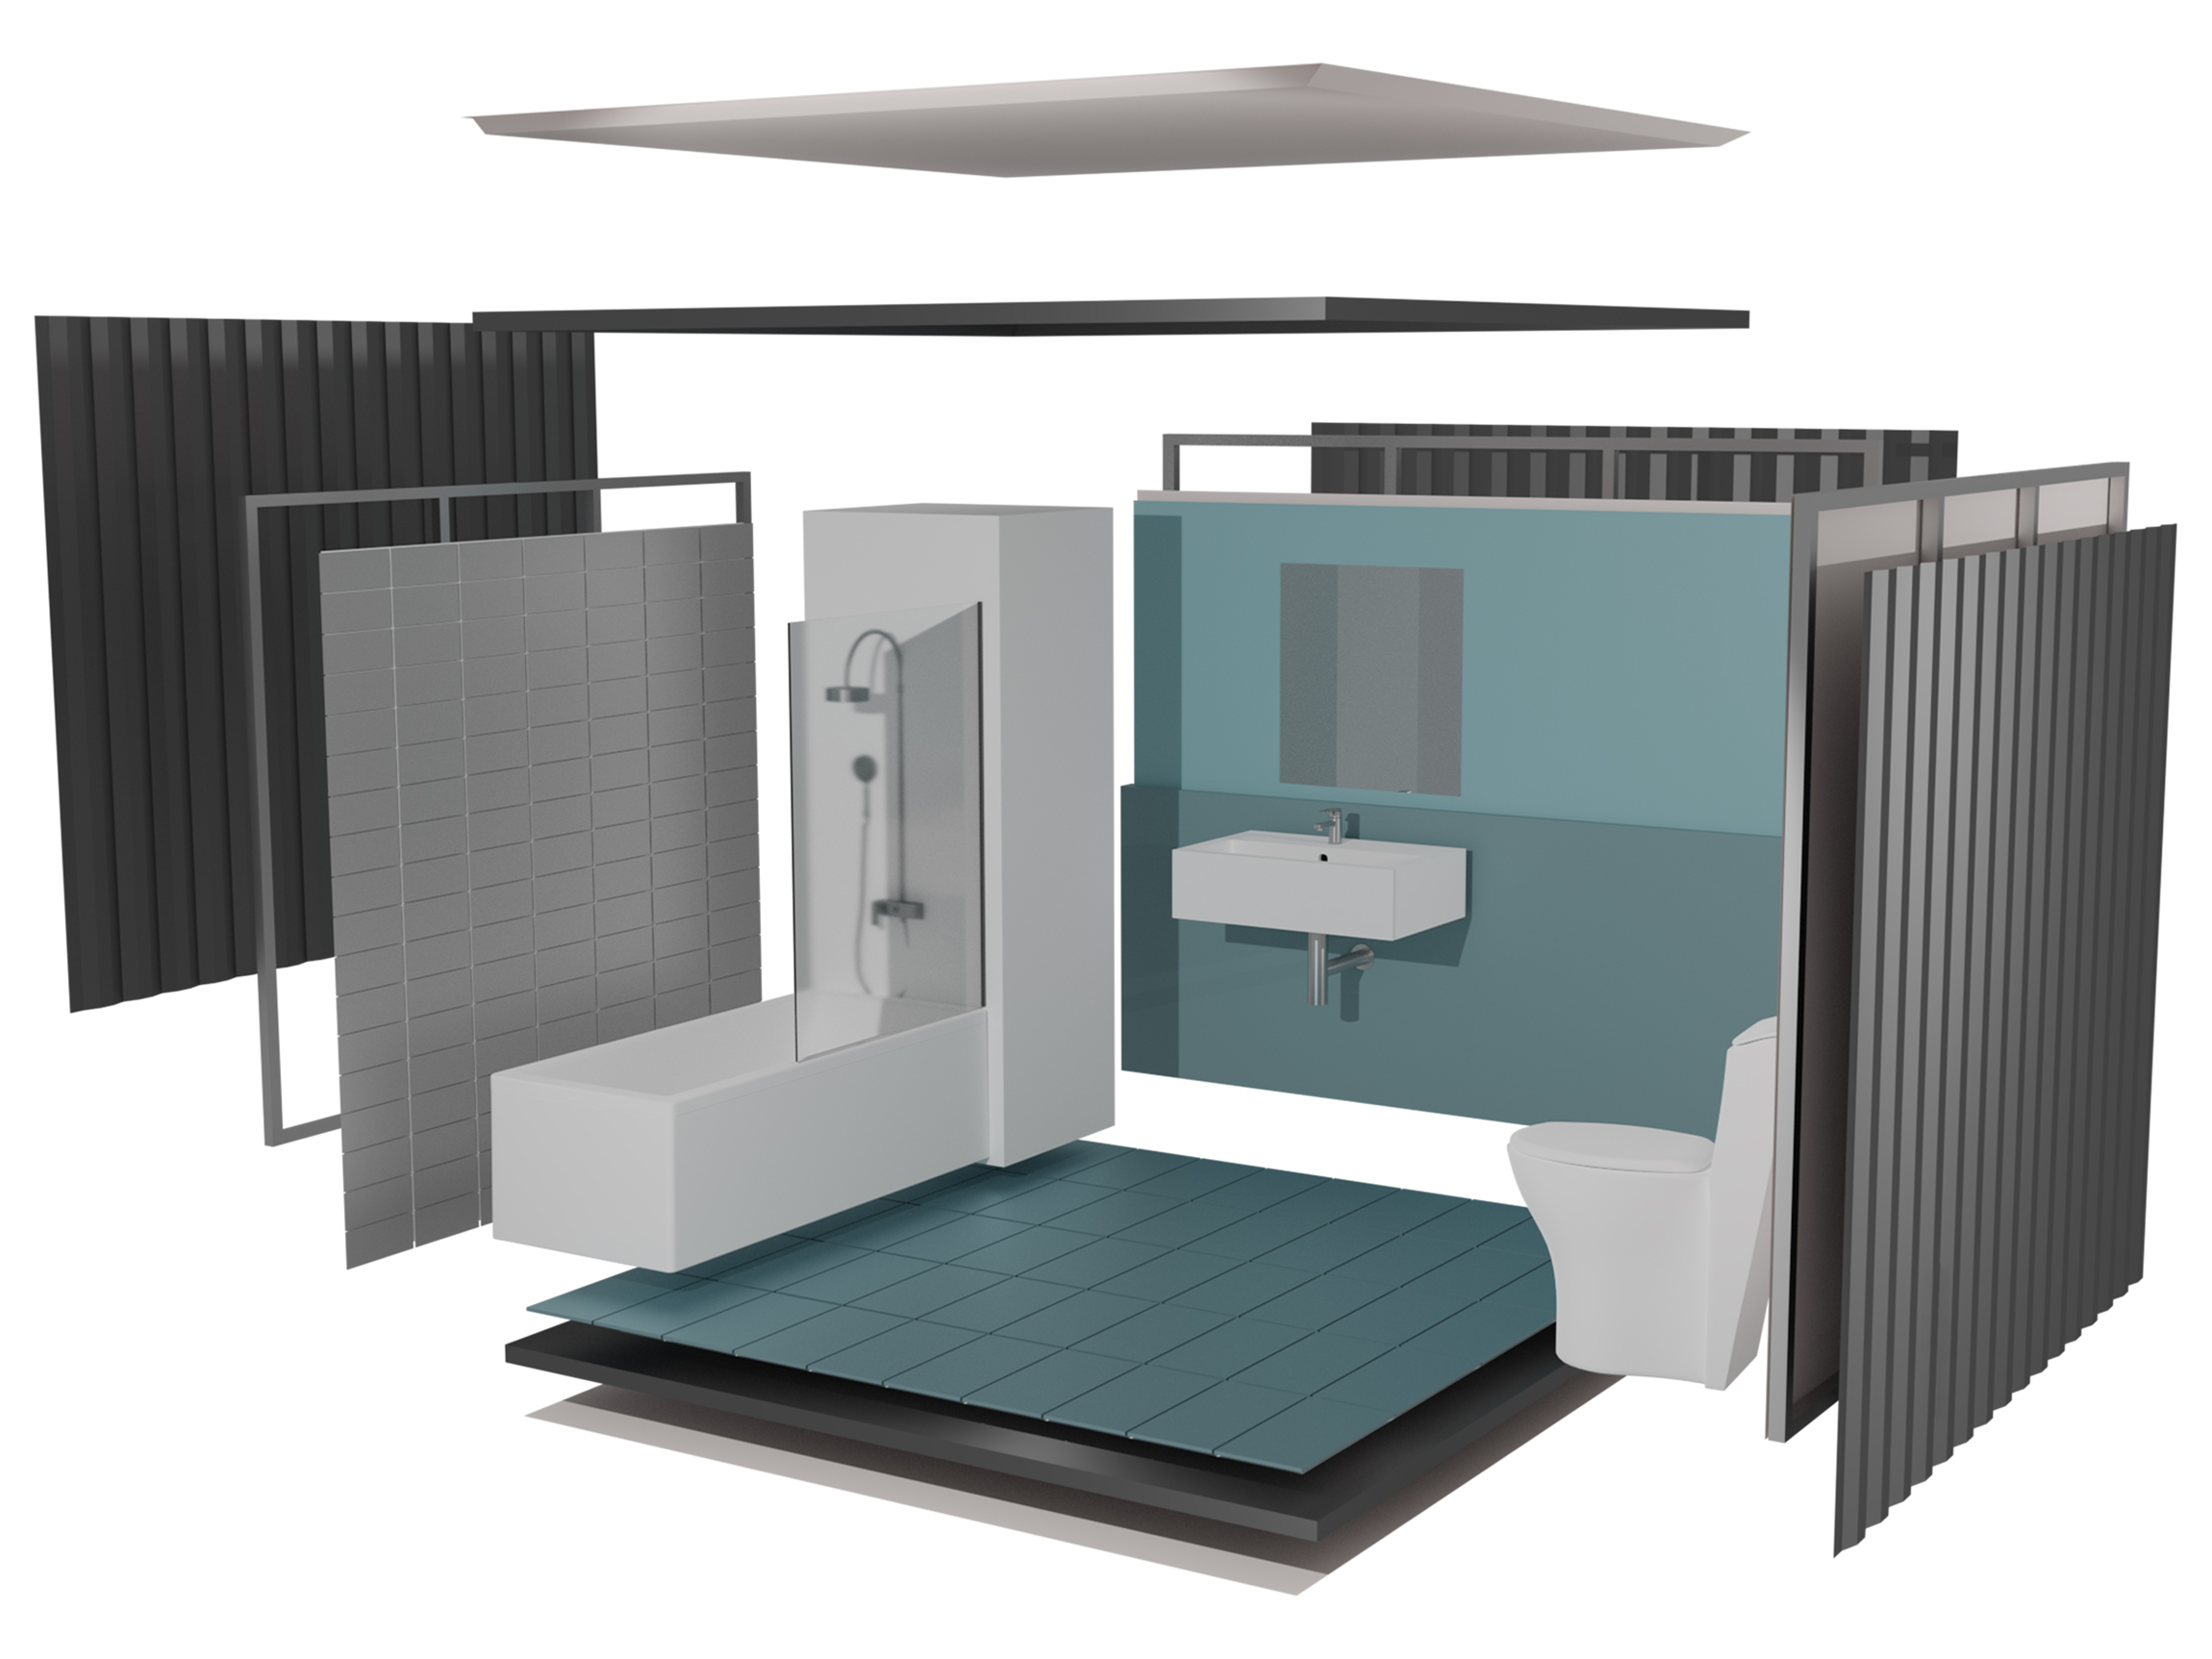 Exploded view illustration of bathroom pod for modular building construction